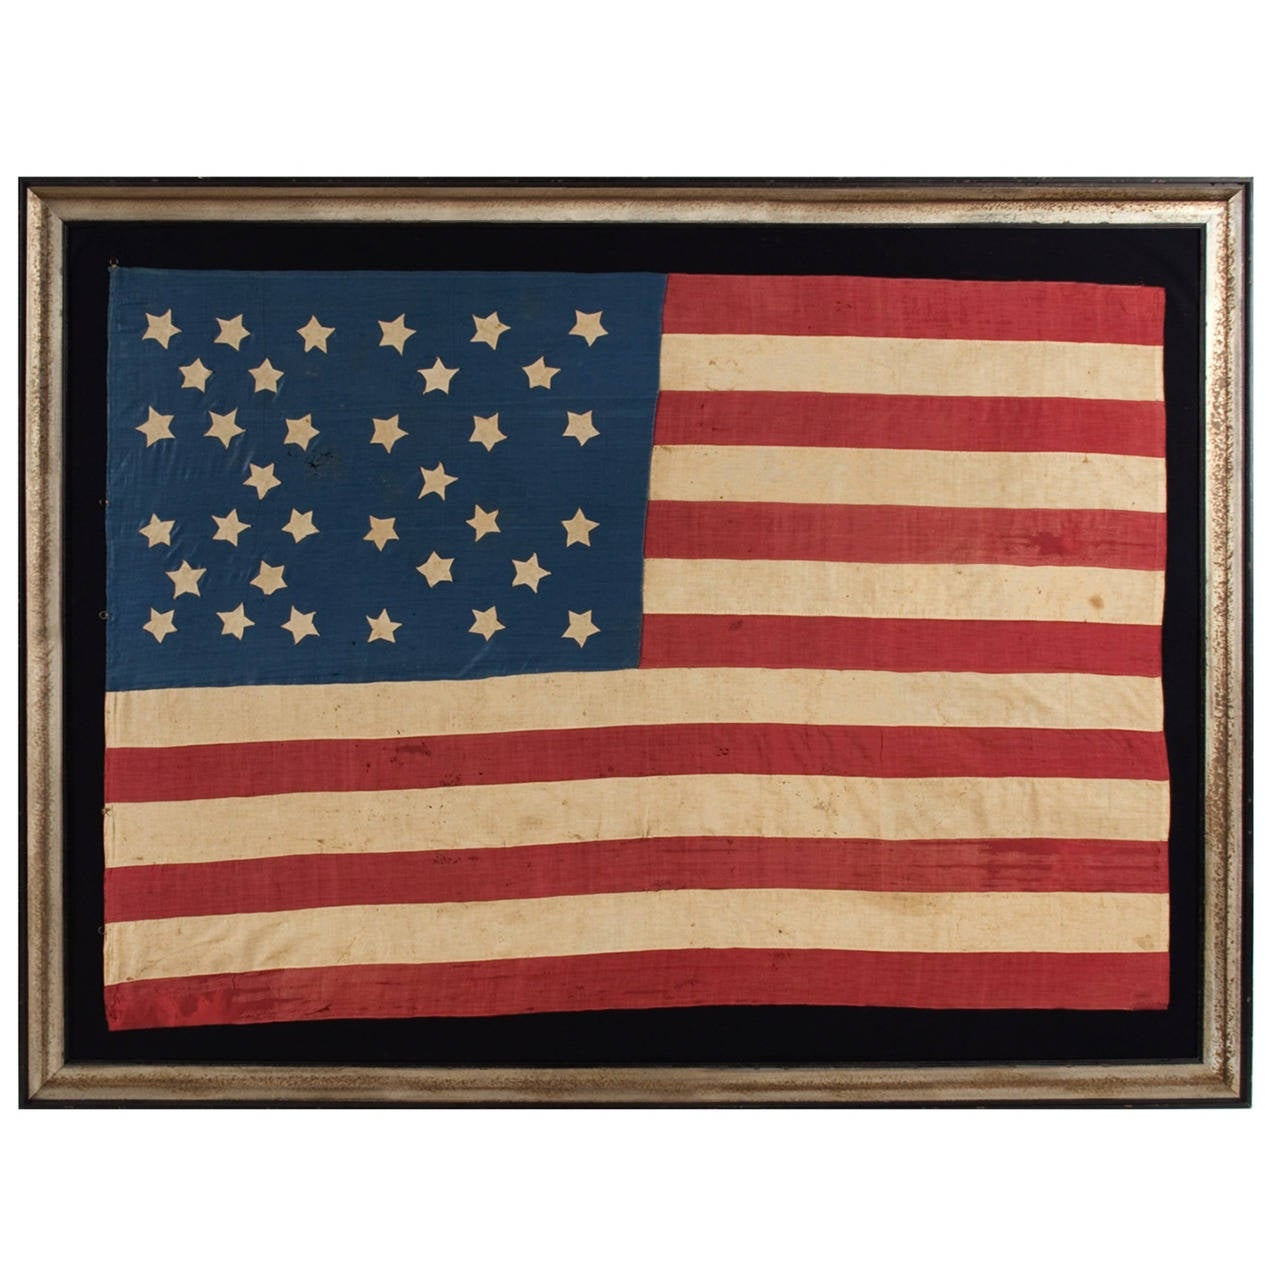 Homemade 34 Star Flag, Cornflower Blue, Interesting Configuration, 1861-1863 For Sale